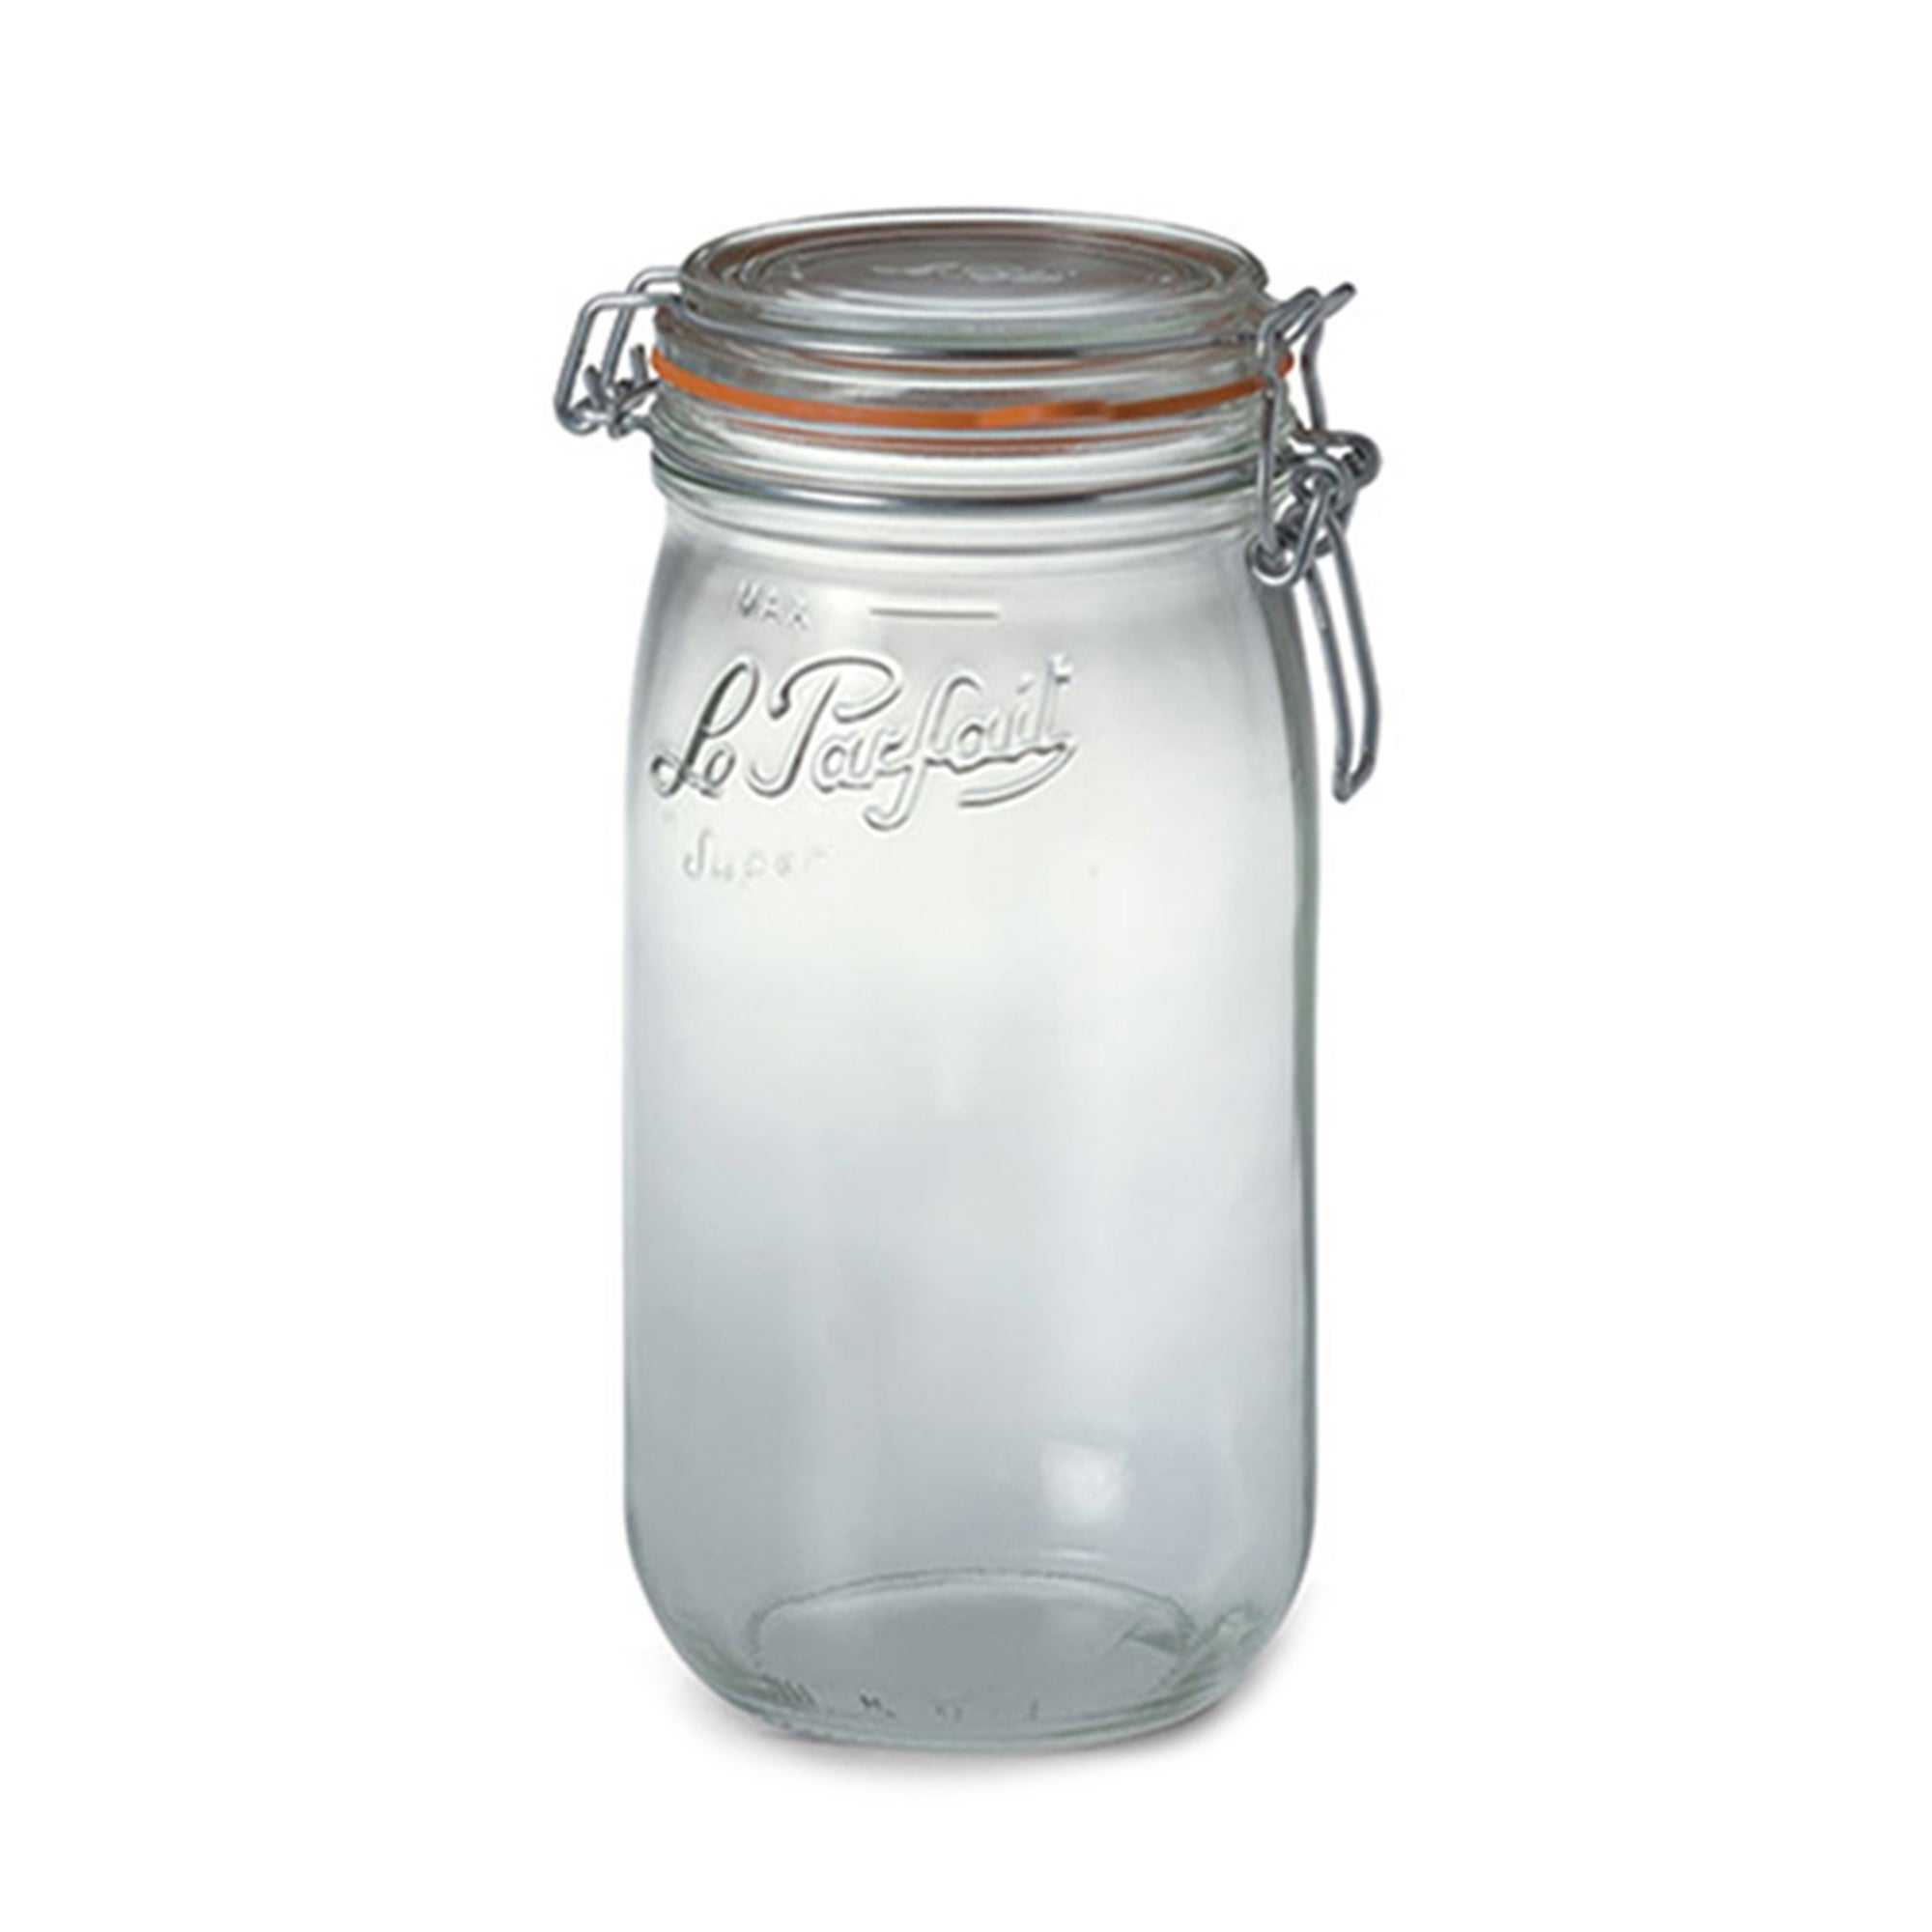 Le Parfait 1.5 Litre Preserving Jar